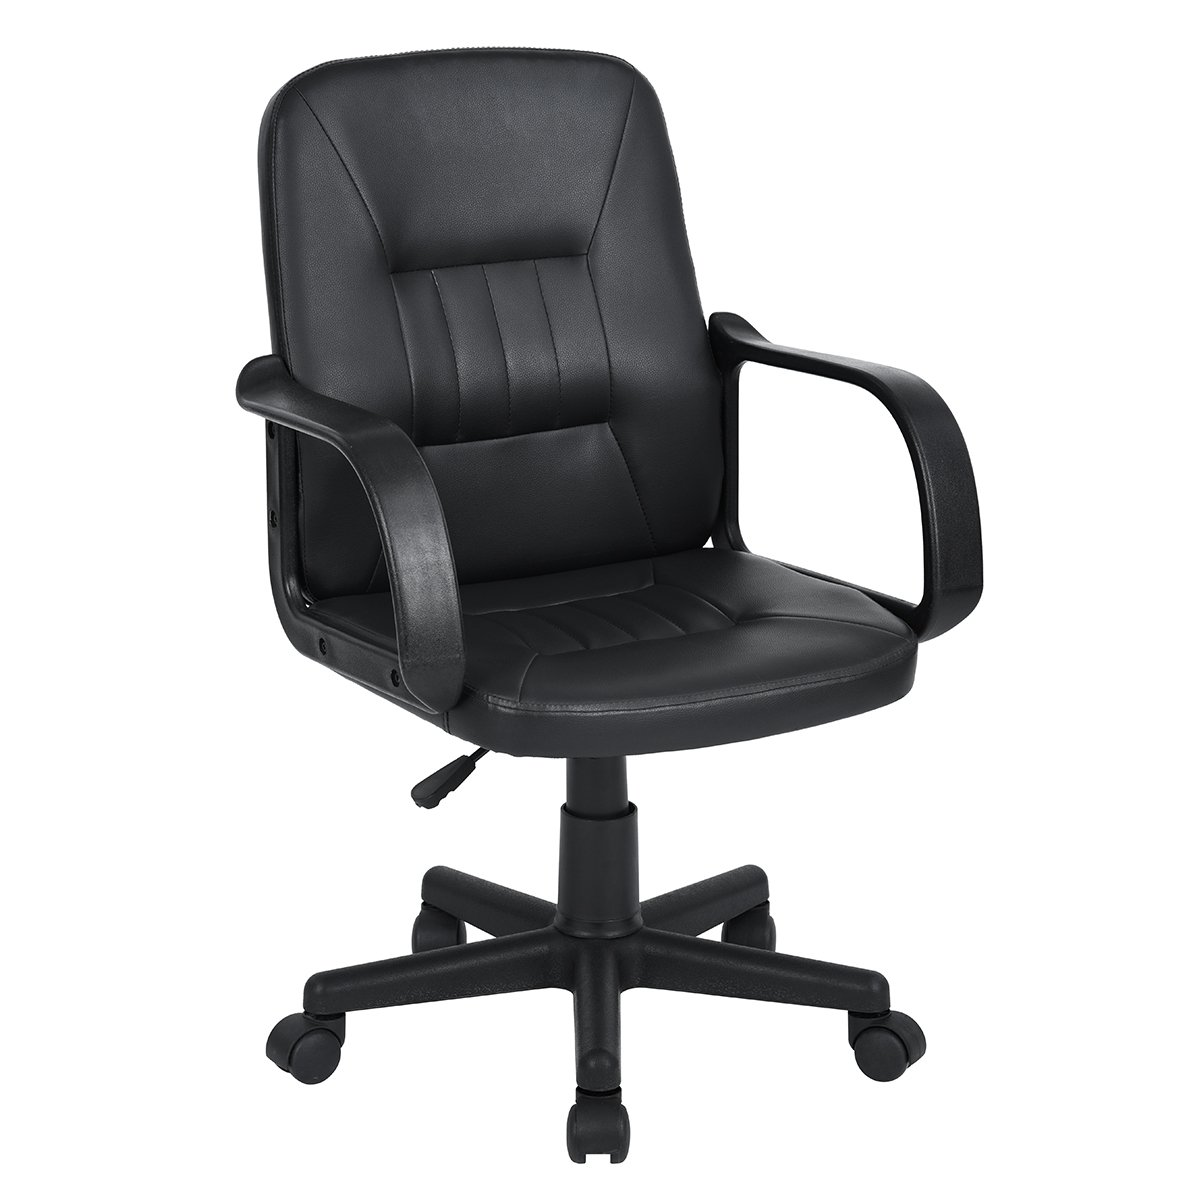 Amazon.com: Ihouse Leather Swivel Adjustable Ergonomic Office Chair with Armrest(Black): Kitchen & Dining